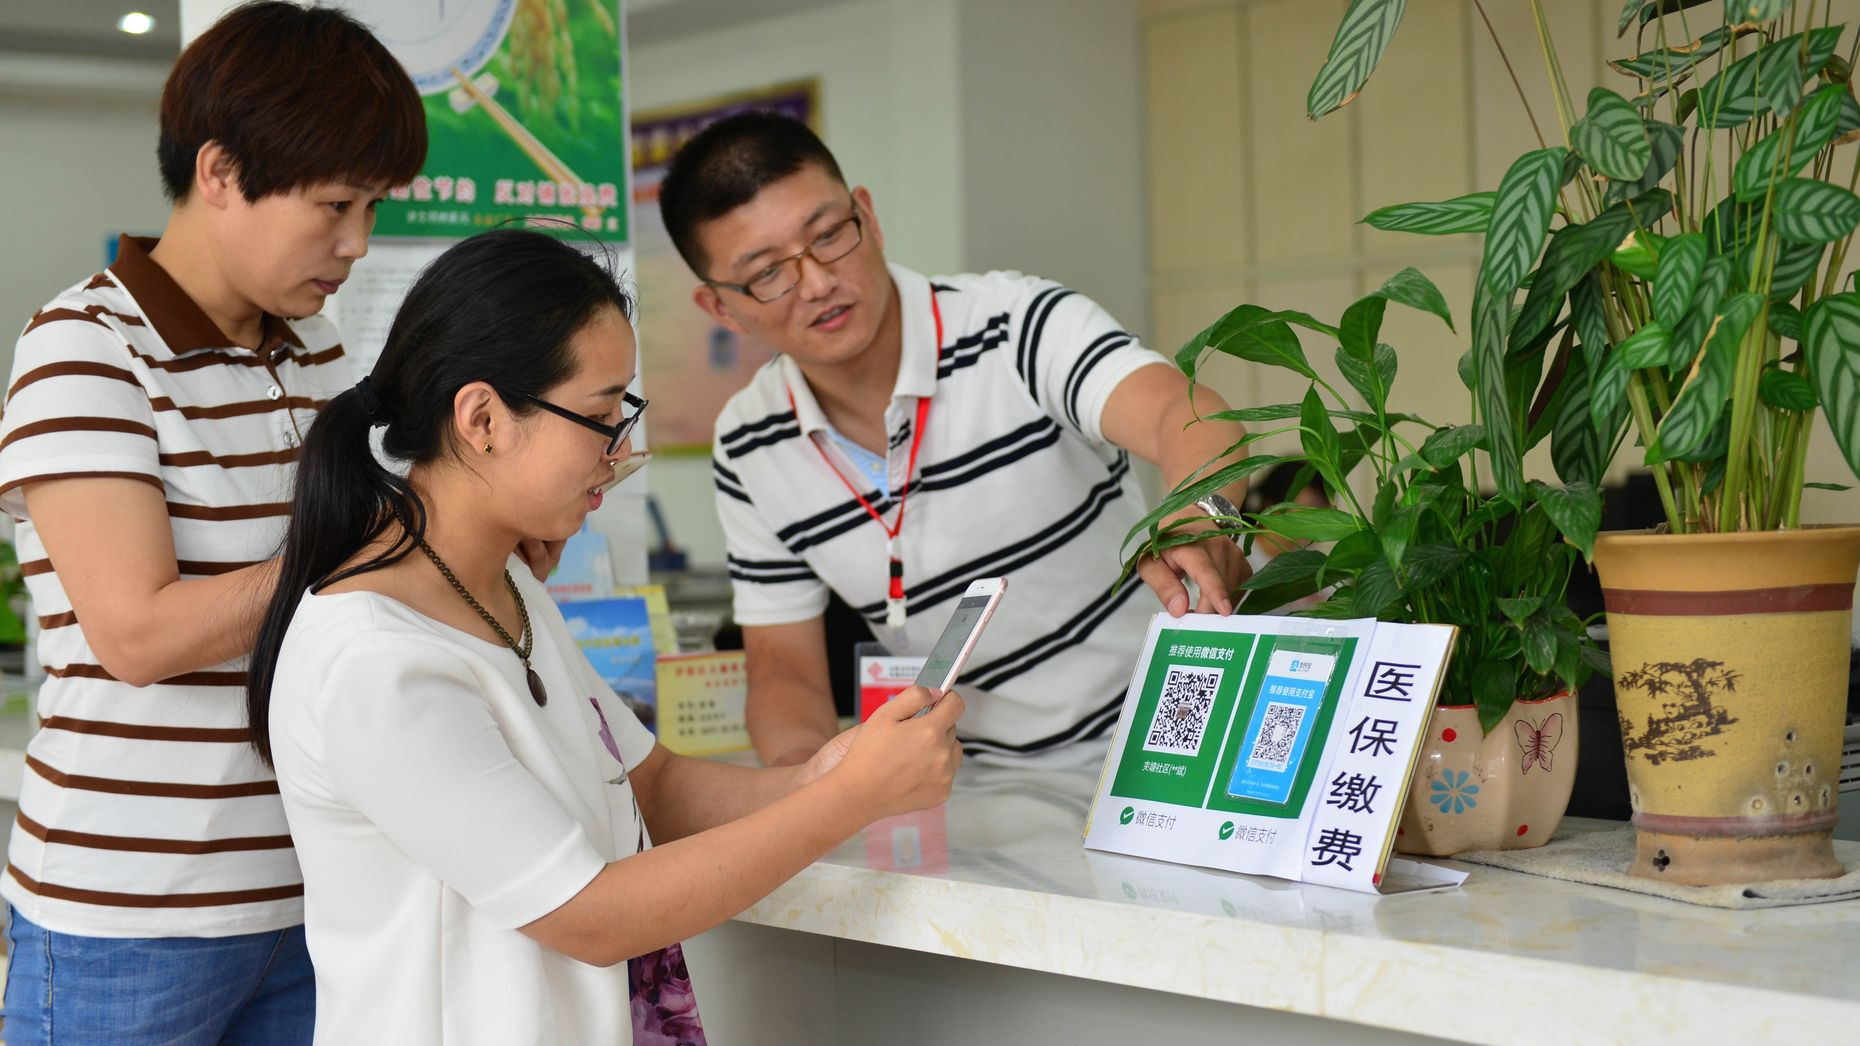 Chinese patients scanning a QR code to pay their medical bills using WeChat in June. Photo by AP.